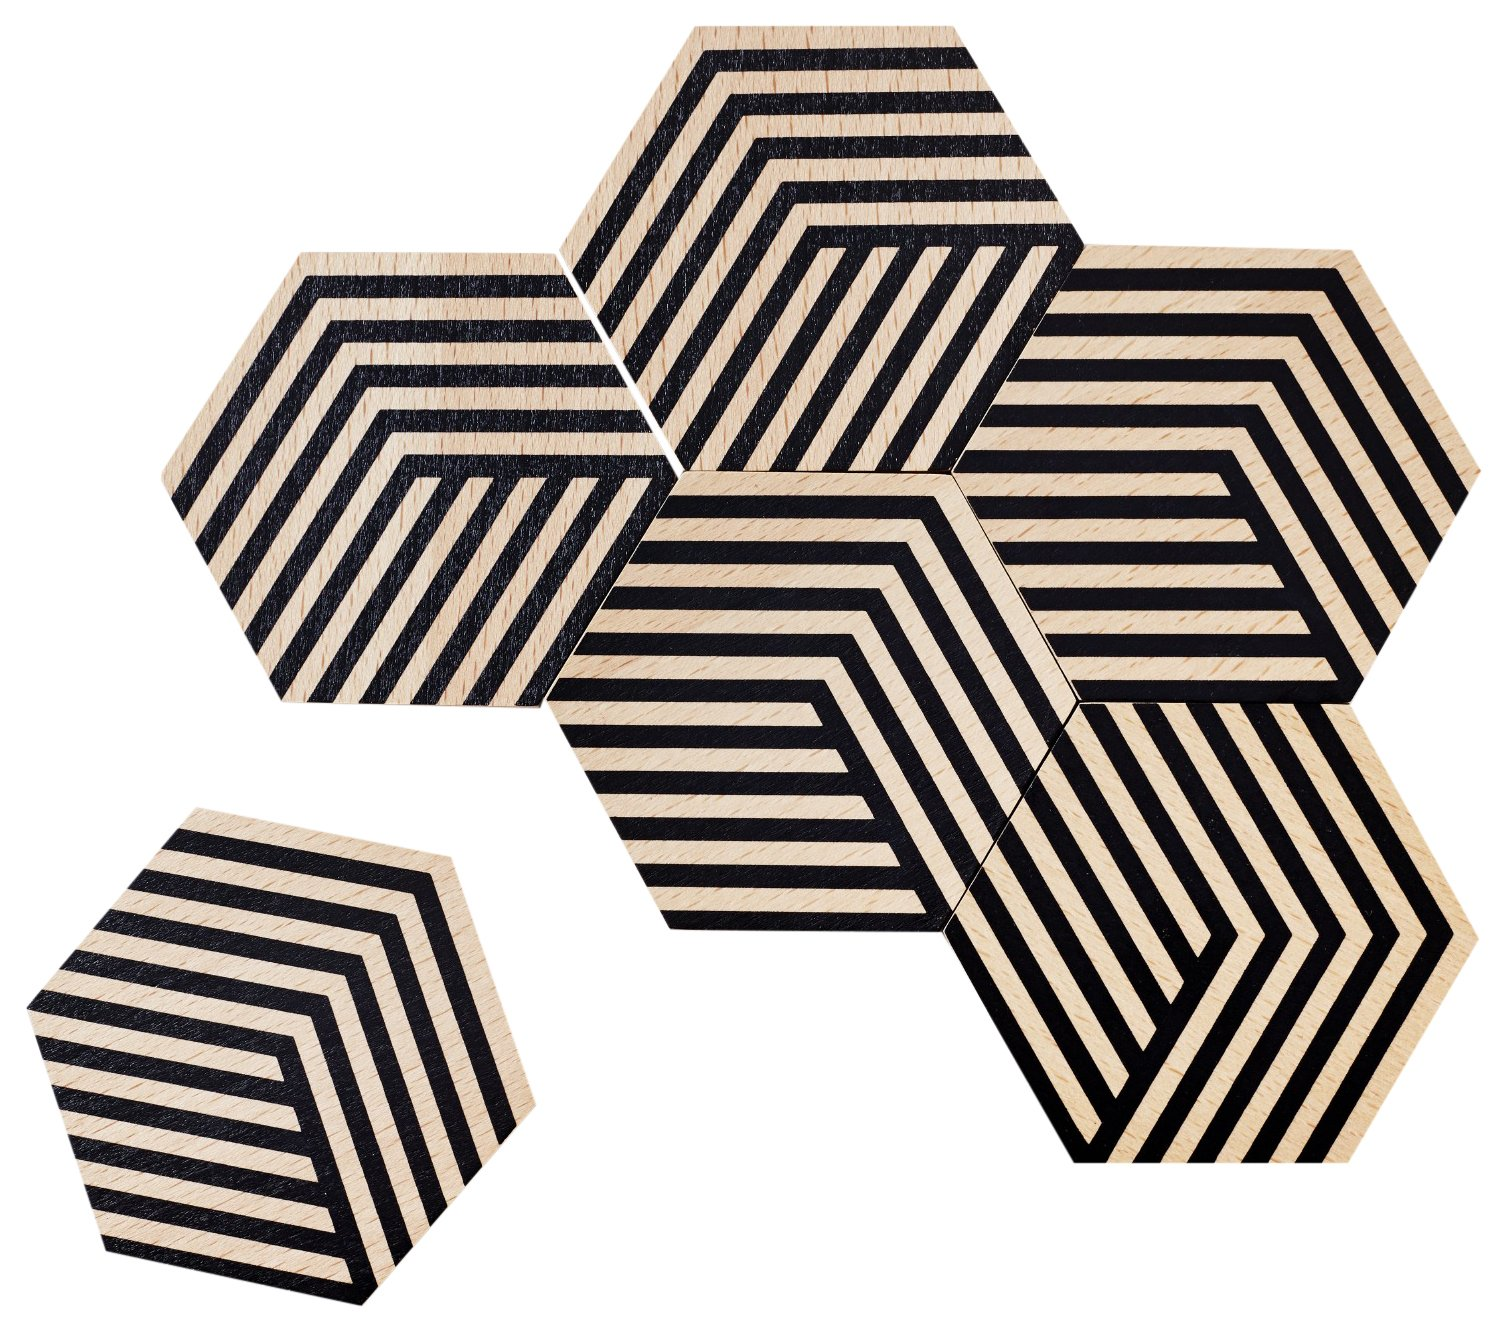 Areaware Table Tiles (Optic Black) by Areaware